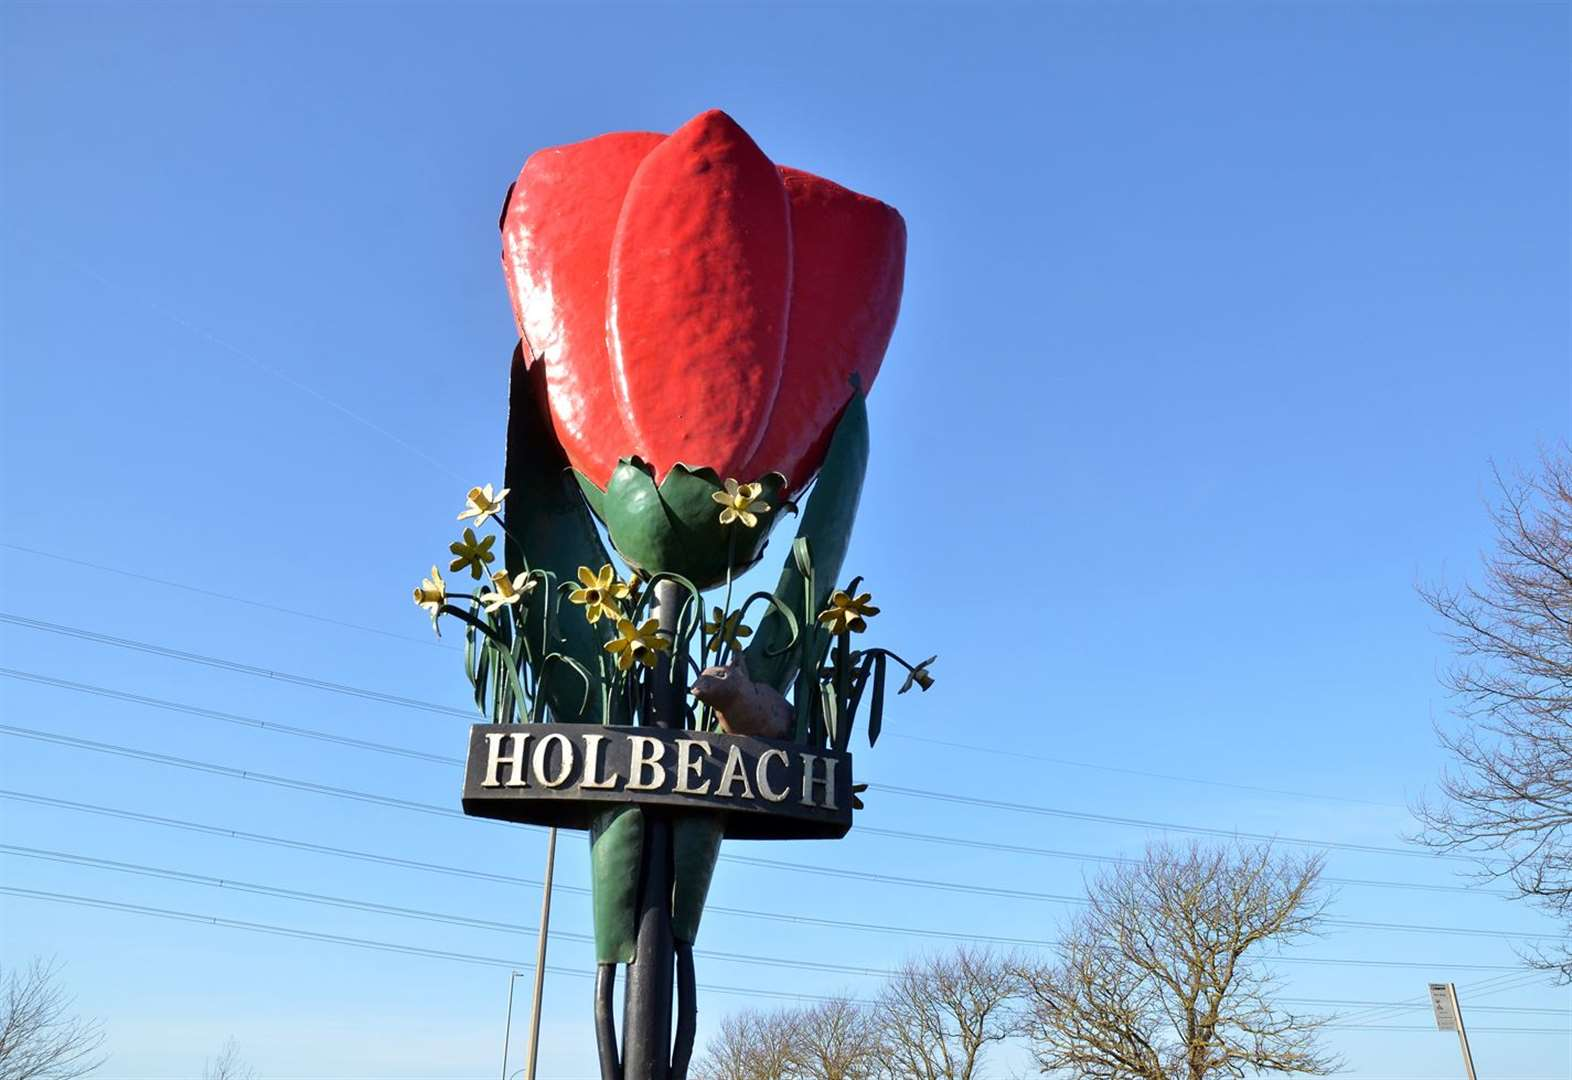 Letter writer's ideas to improve Holbeach